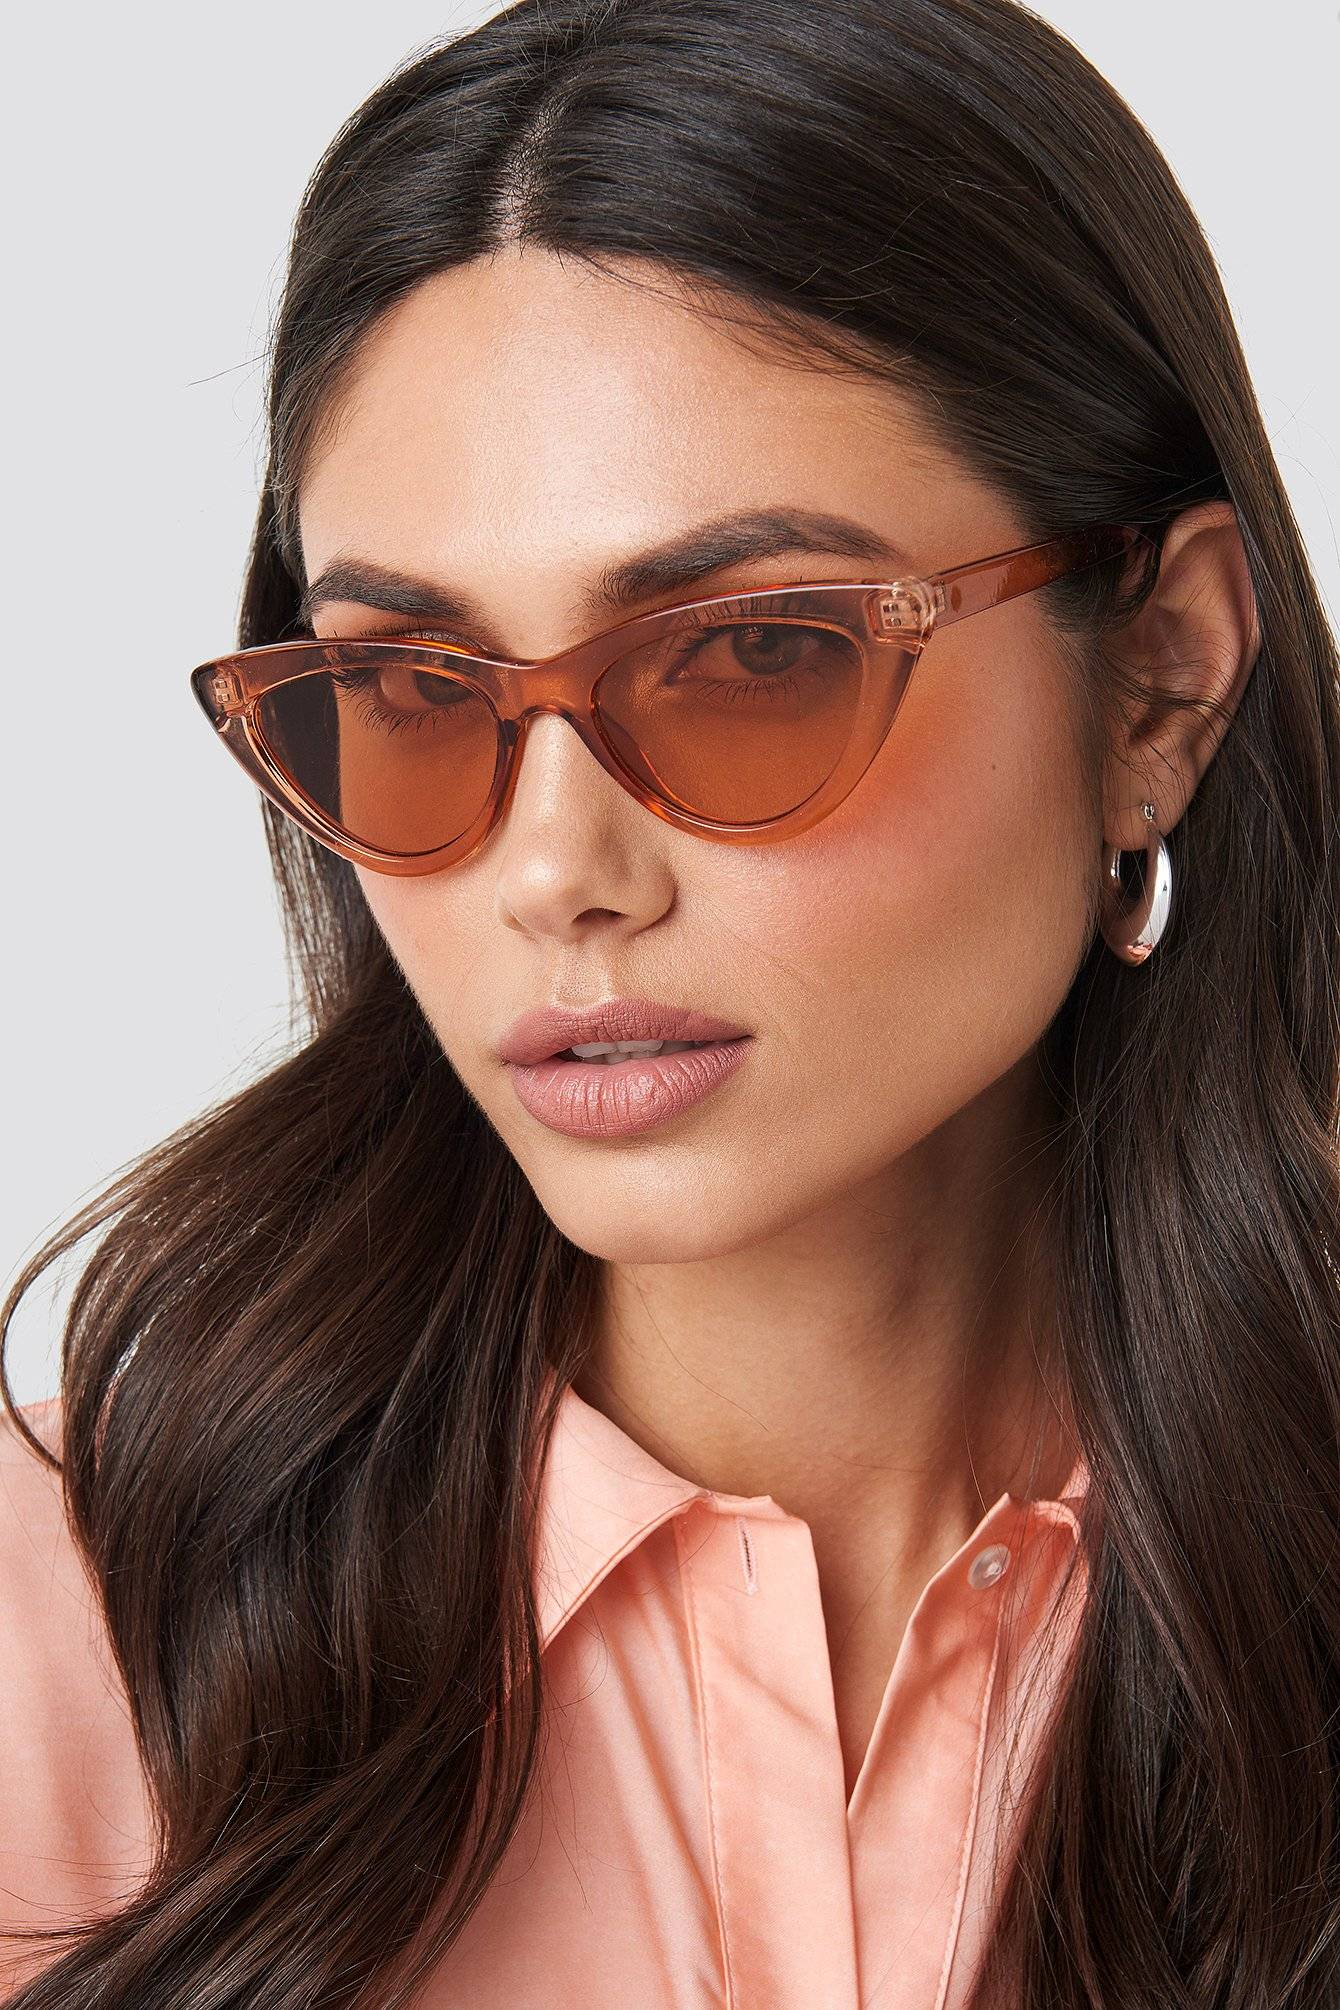 NA-KD Accessories Rounded Cat Eye Sunglasses - Red  - Size: One Size